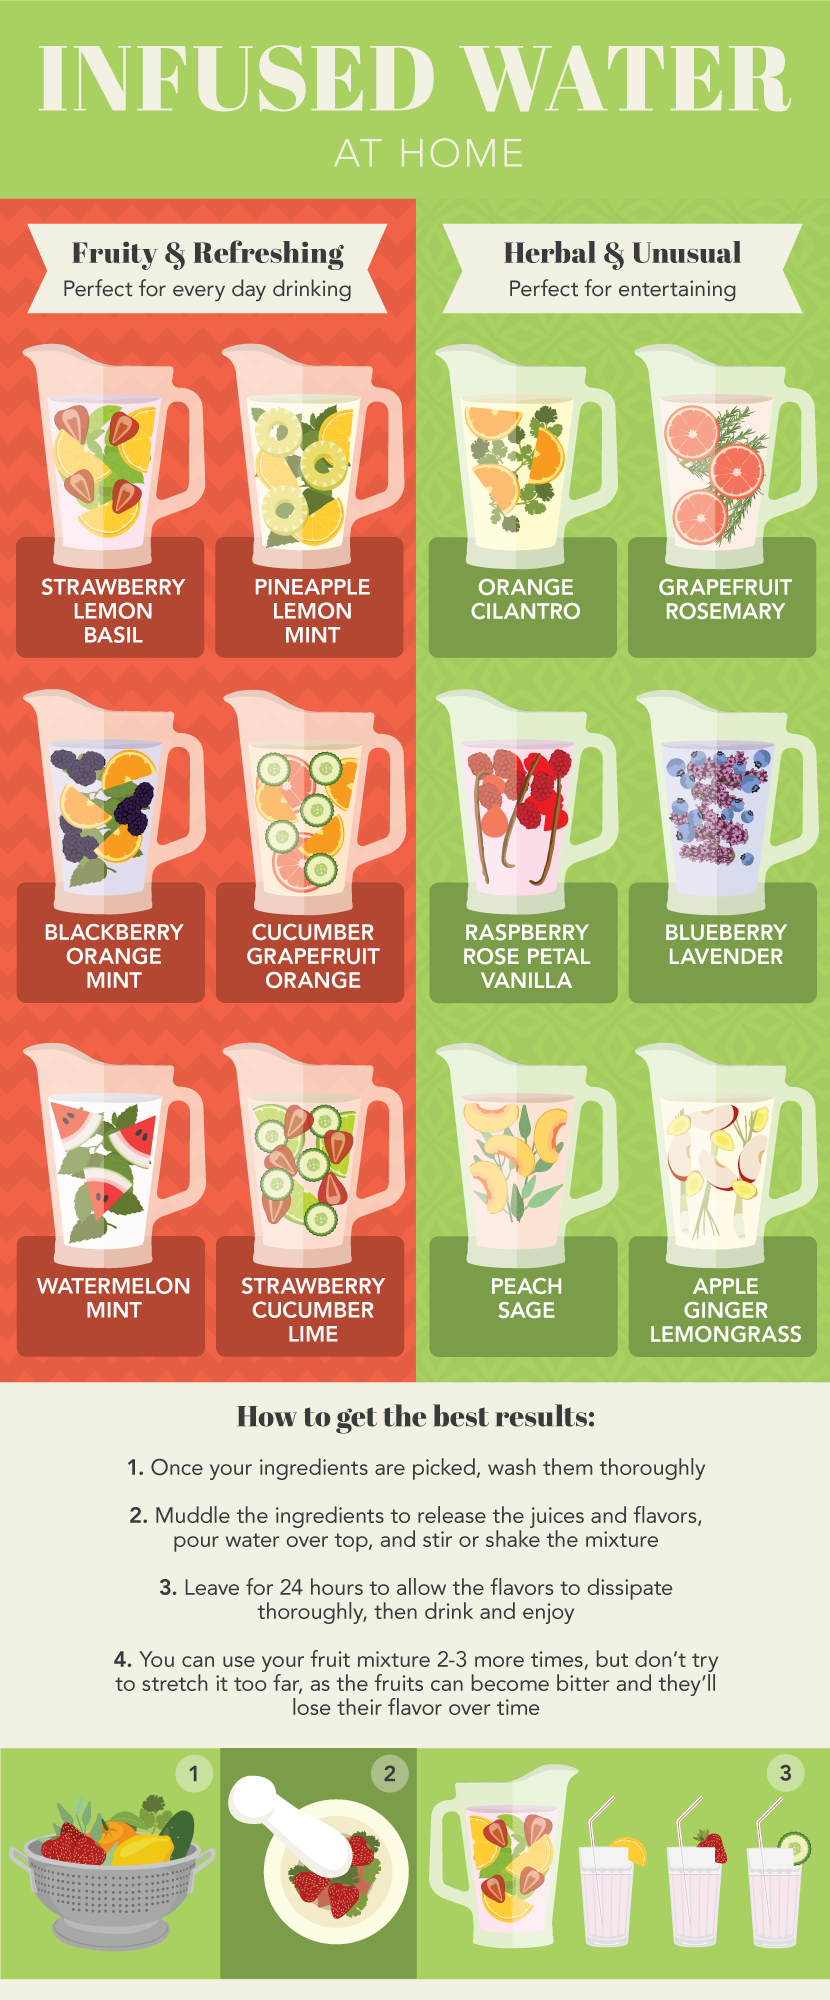 Infusing Water At Home: Healthy Recipes To Try Infographic